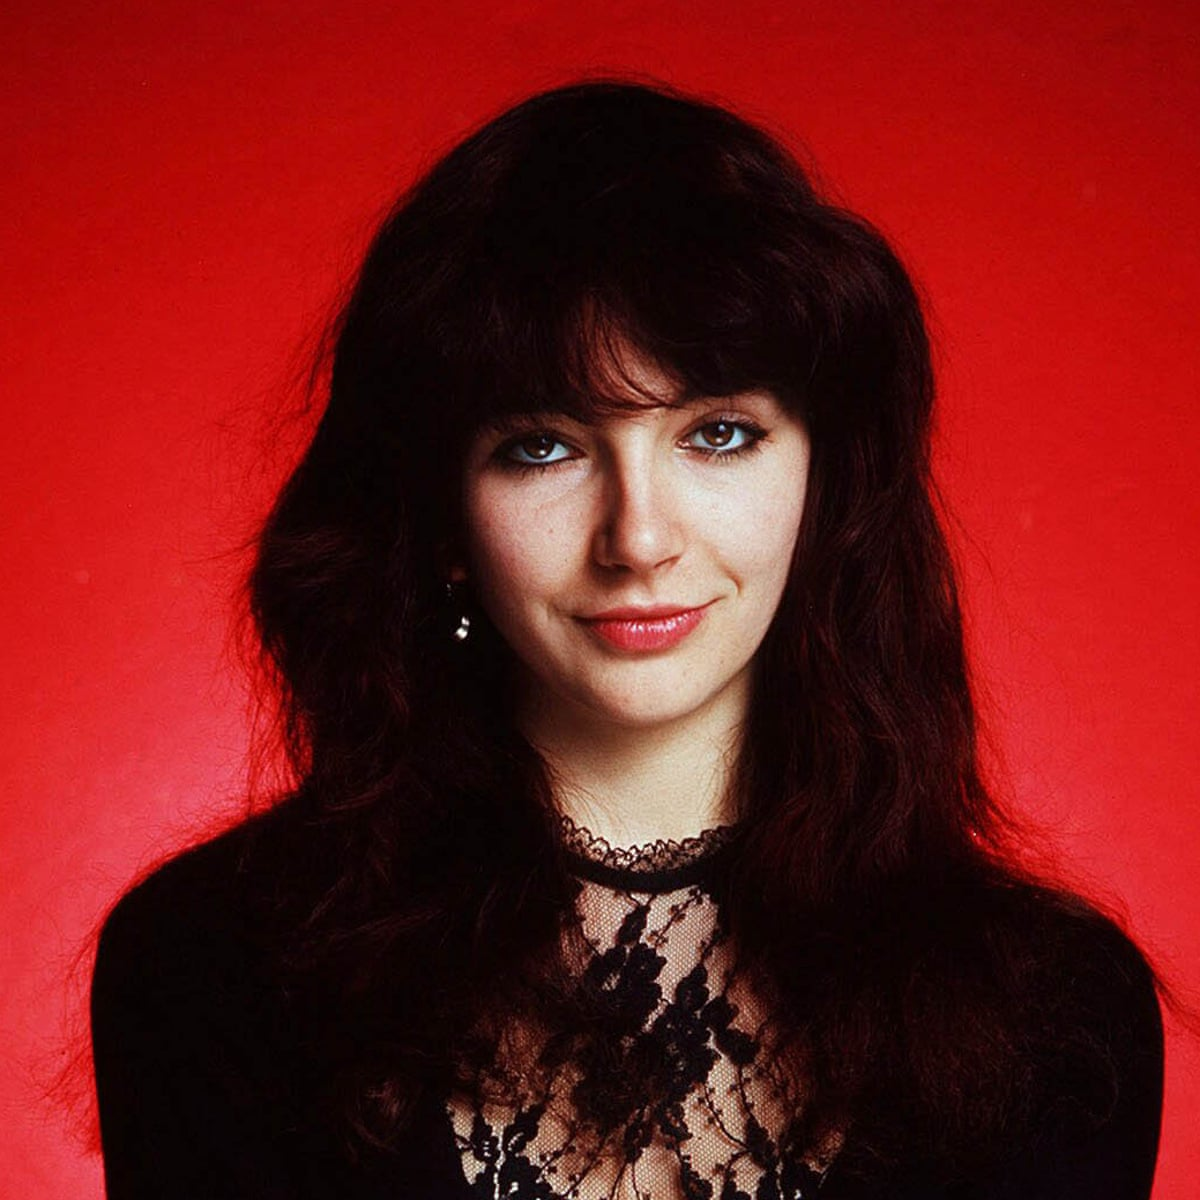 How To Be Invisible By Kate Bush Review Trying To Unravel An Enigma Music Books The Guardian